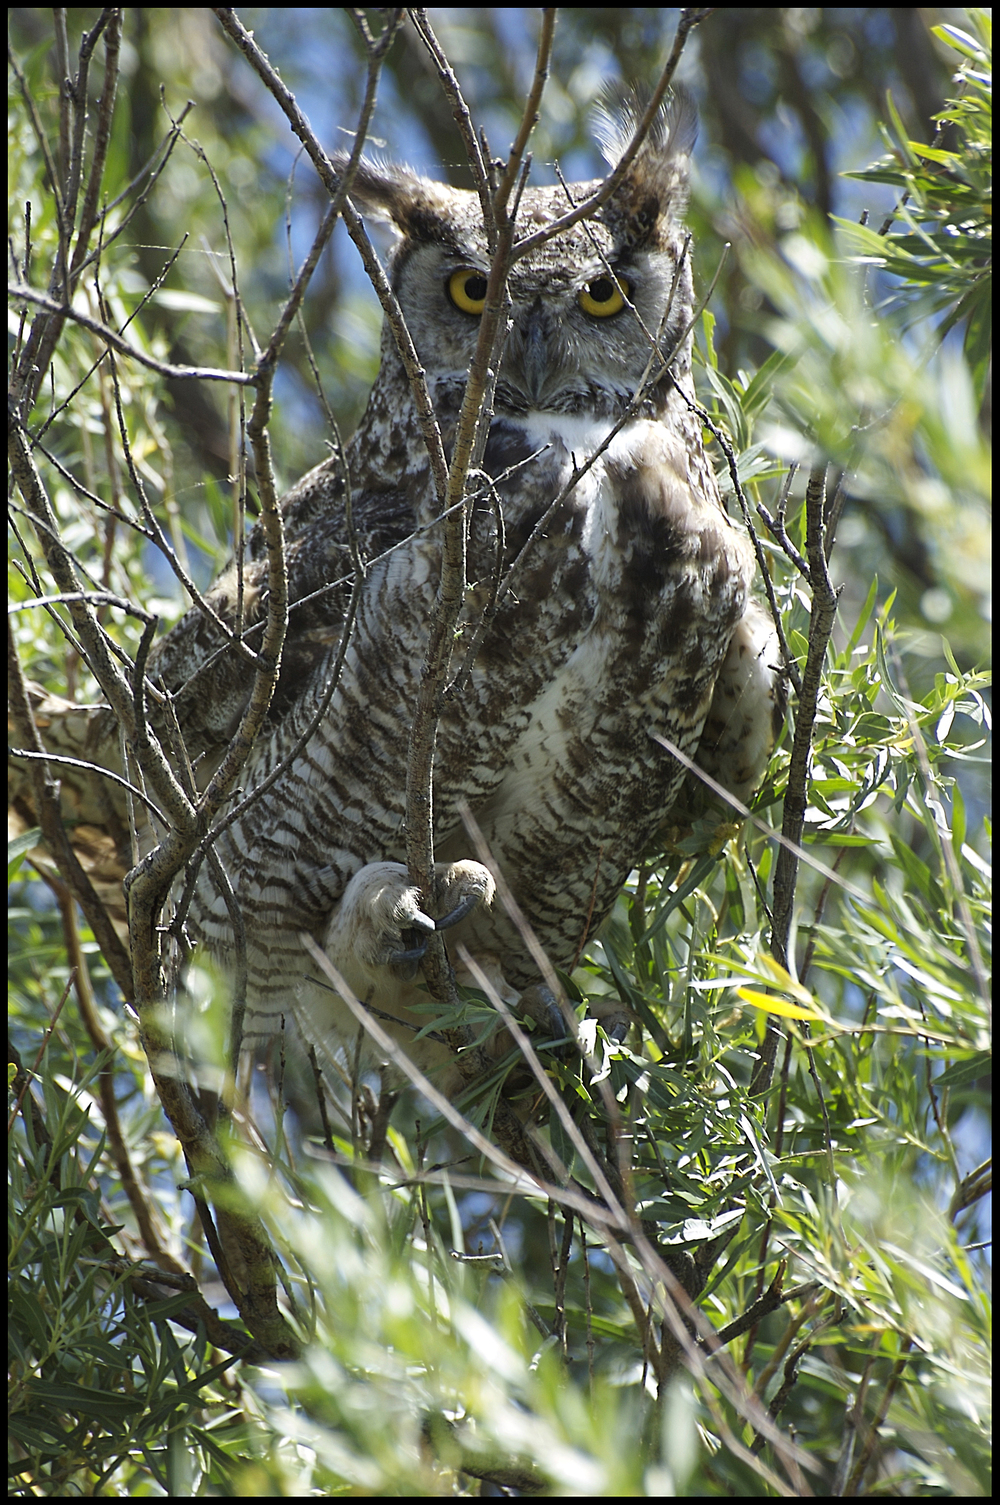 Great Horned Owl, Malheur National Wildlife Refuge, OR